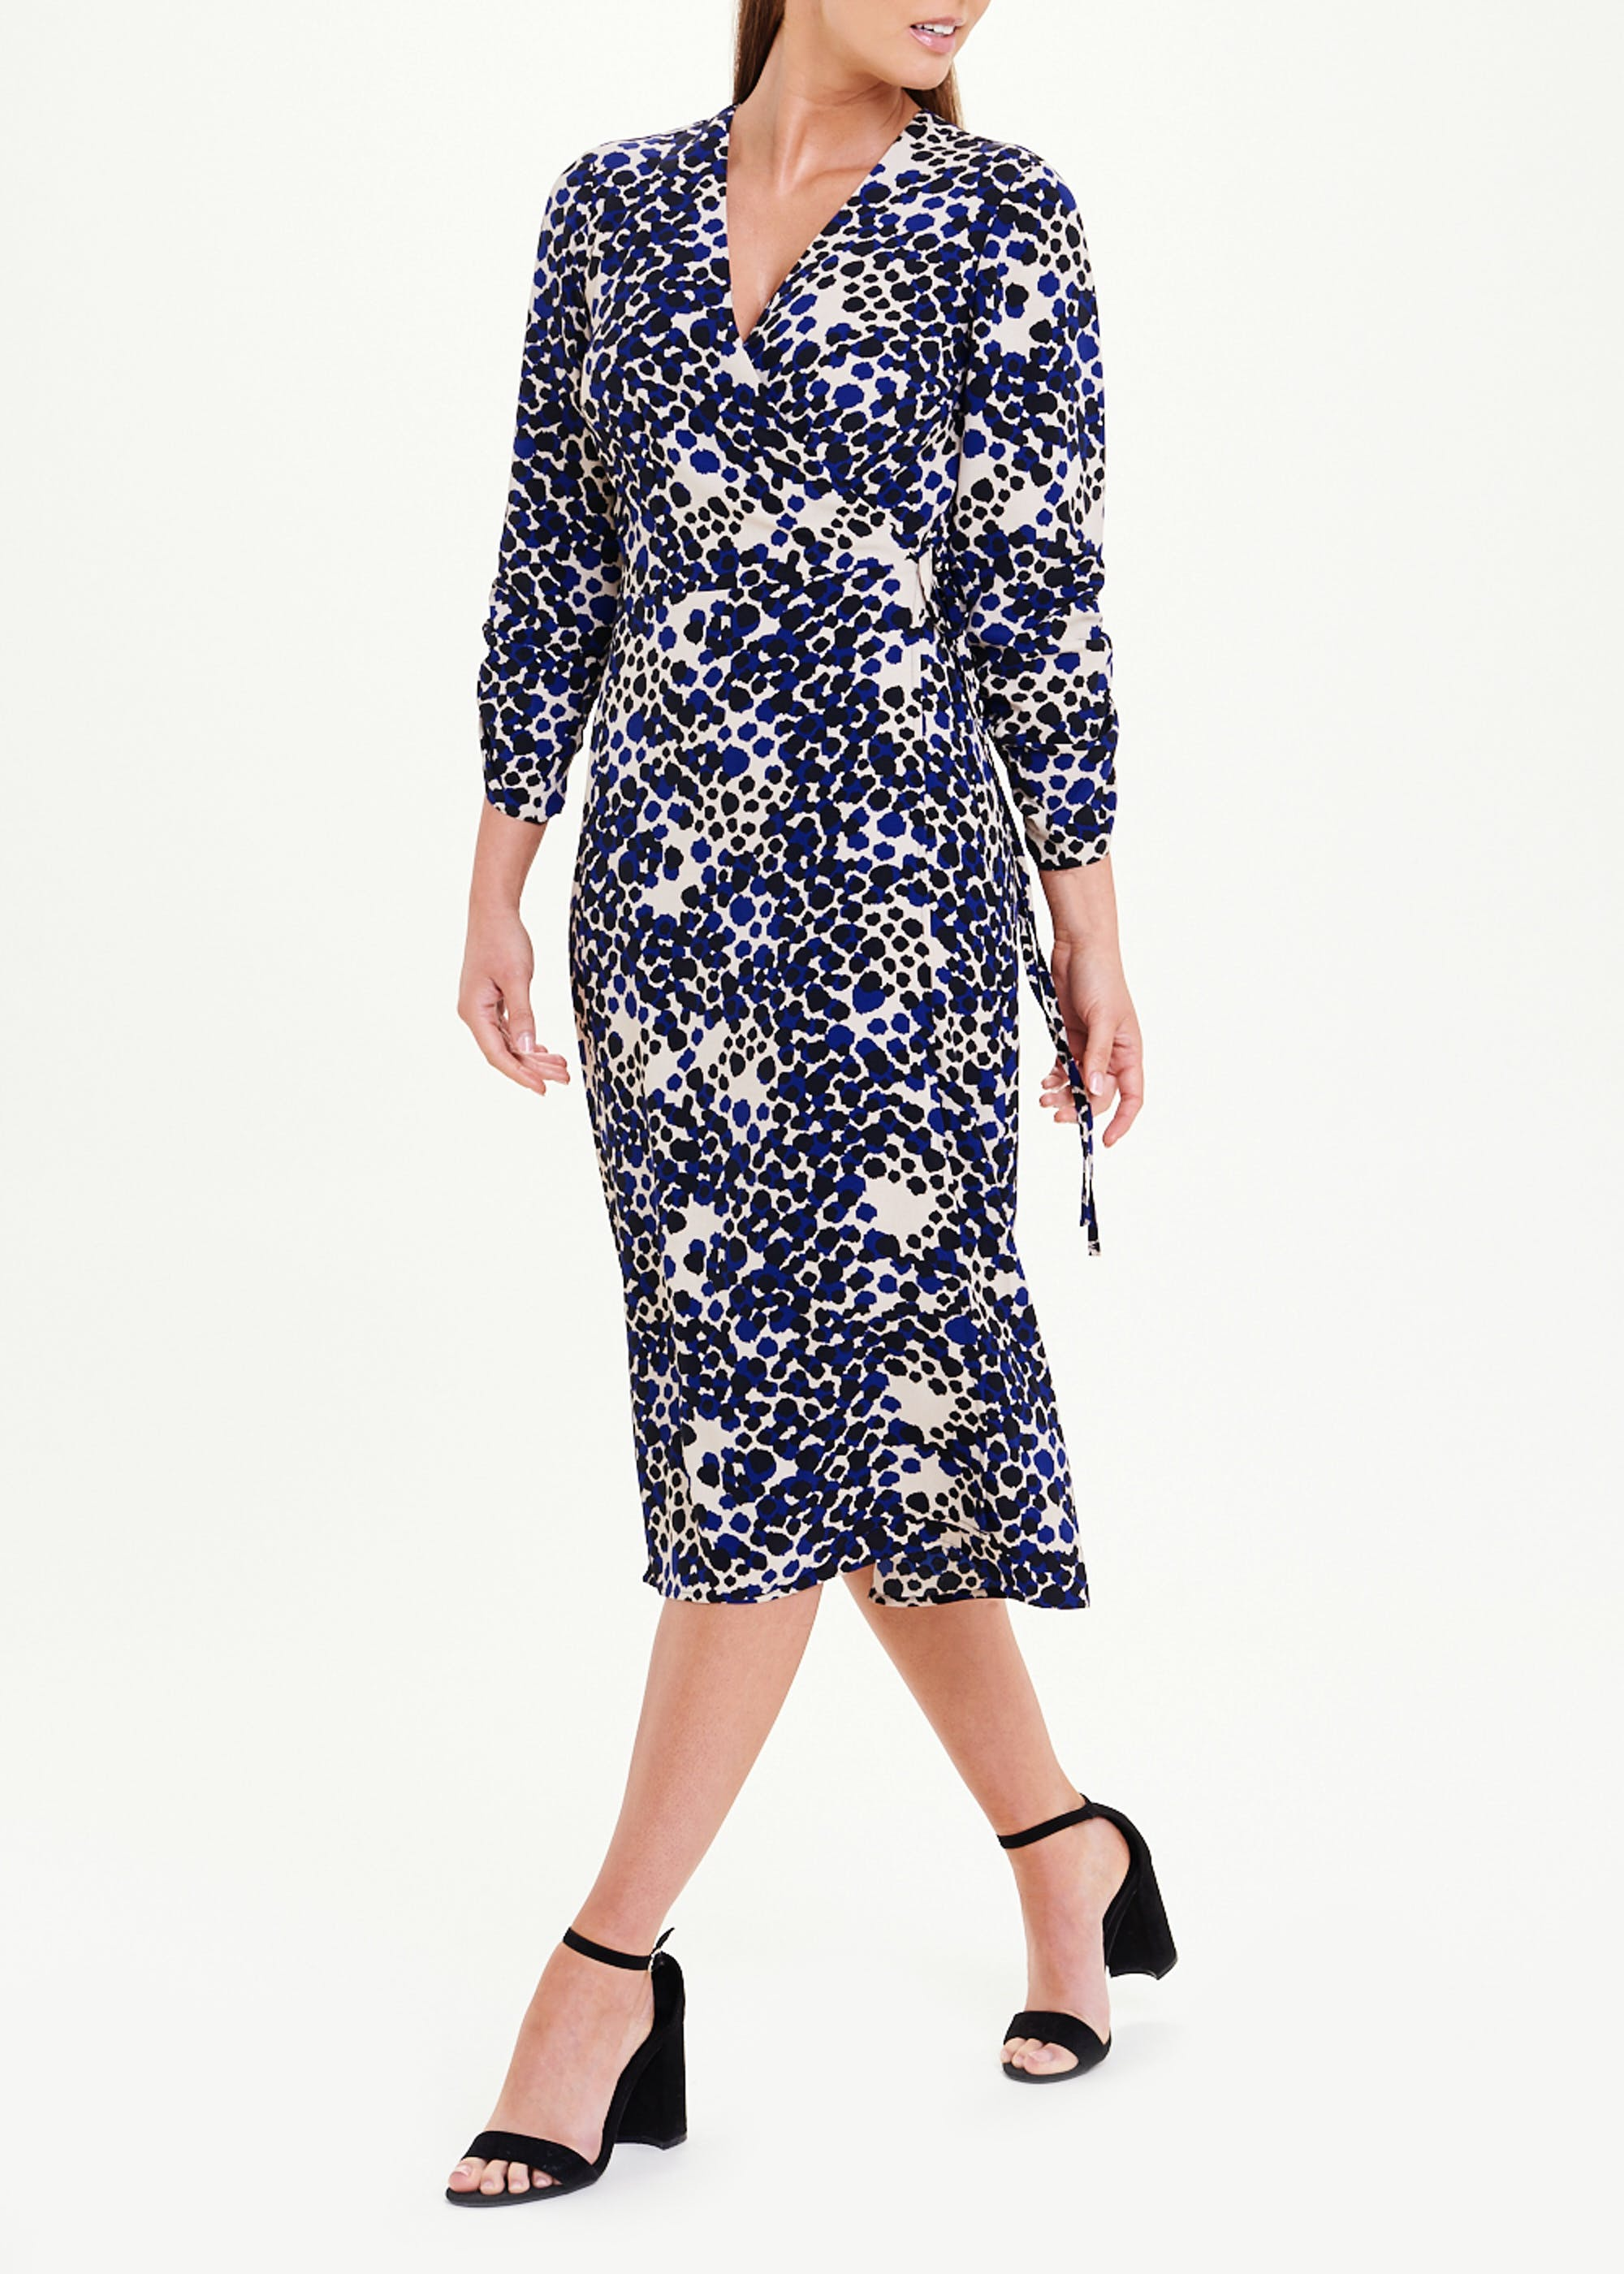 You can't go wrong with a wrap dress - and this is yours for just £12